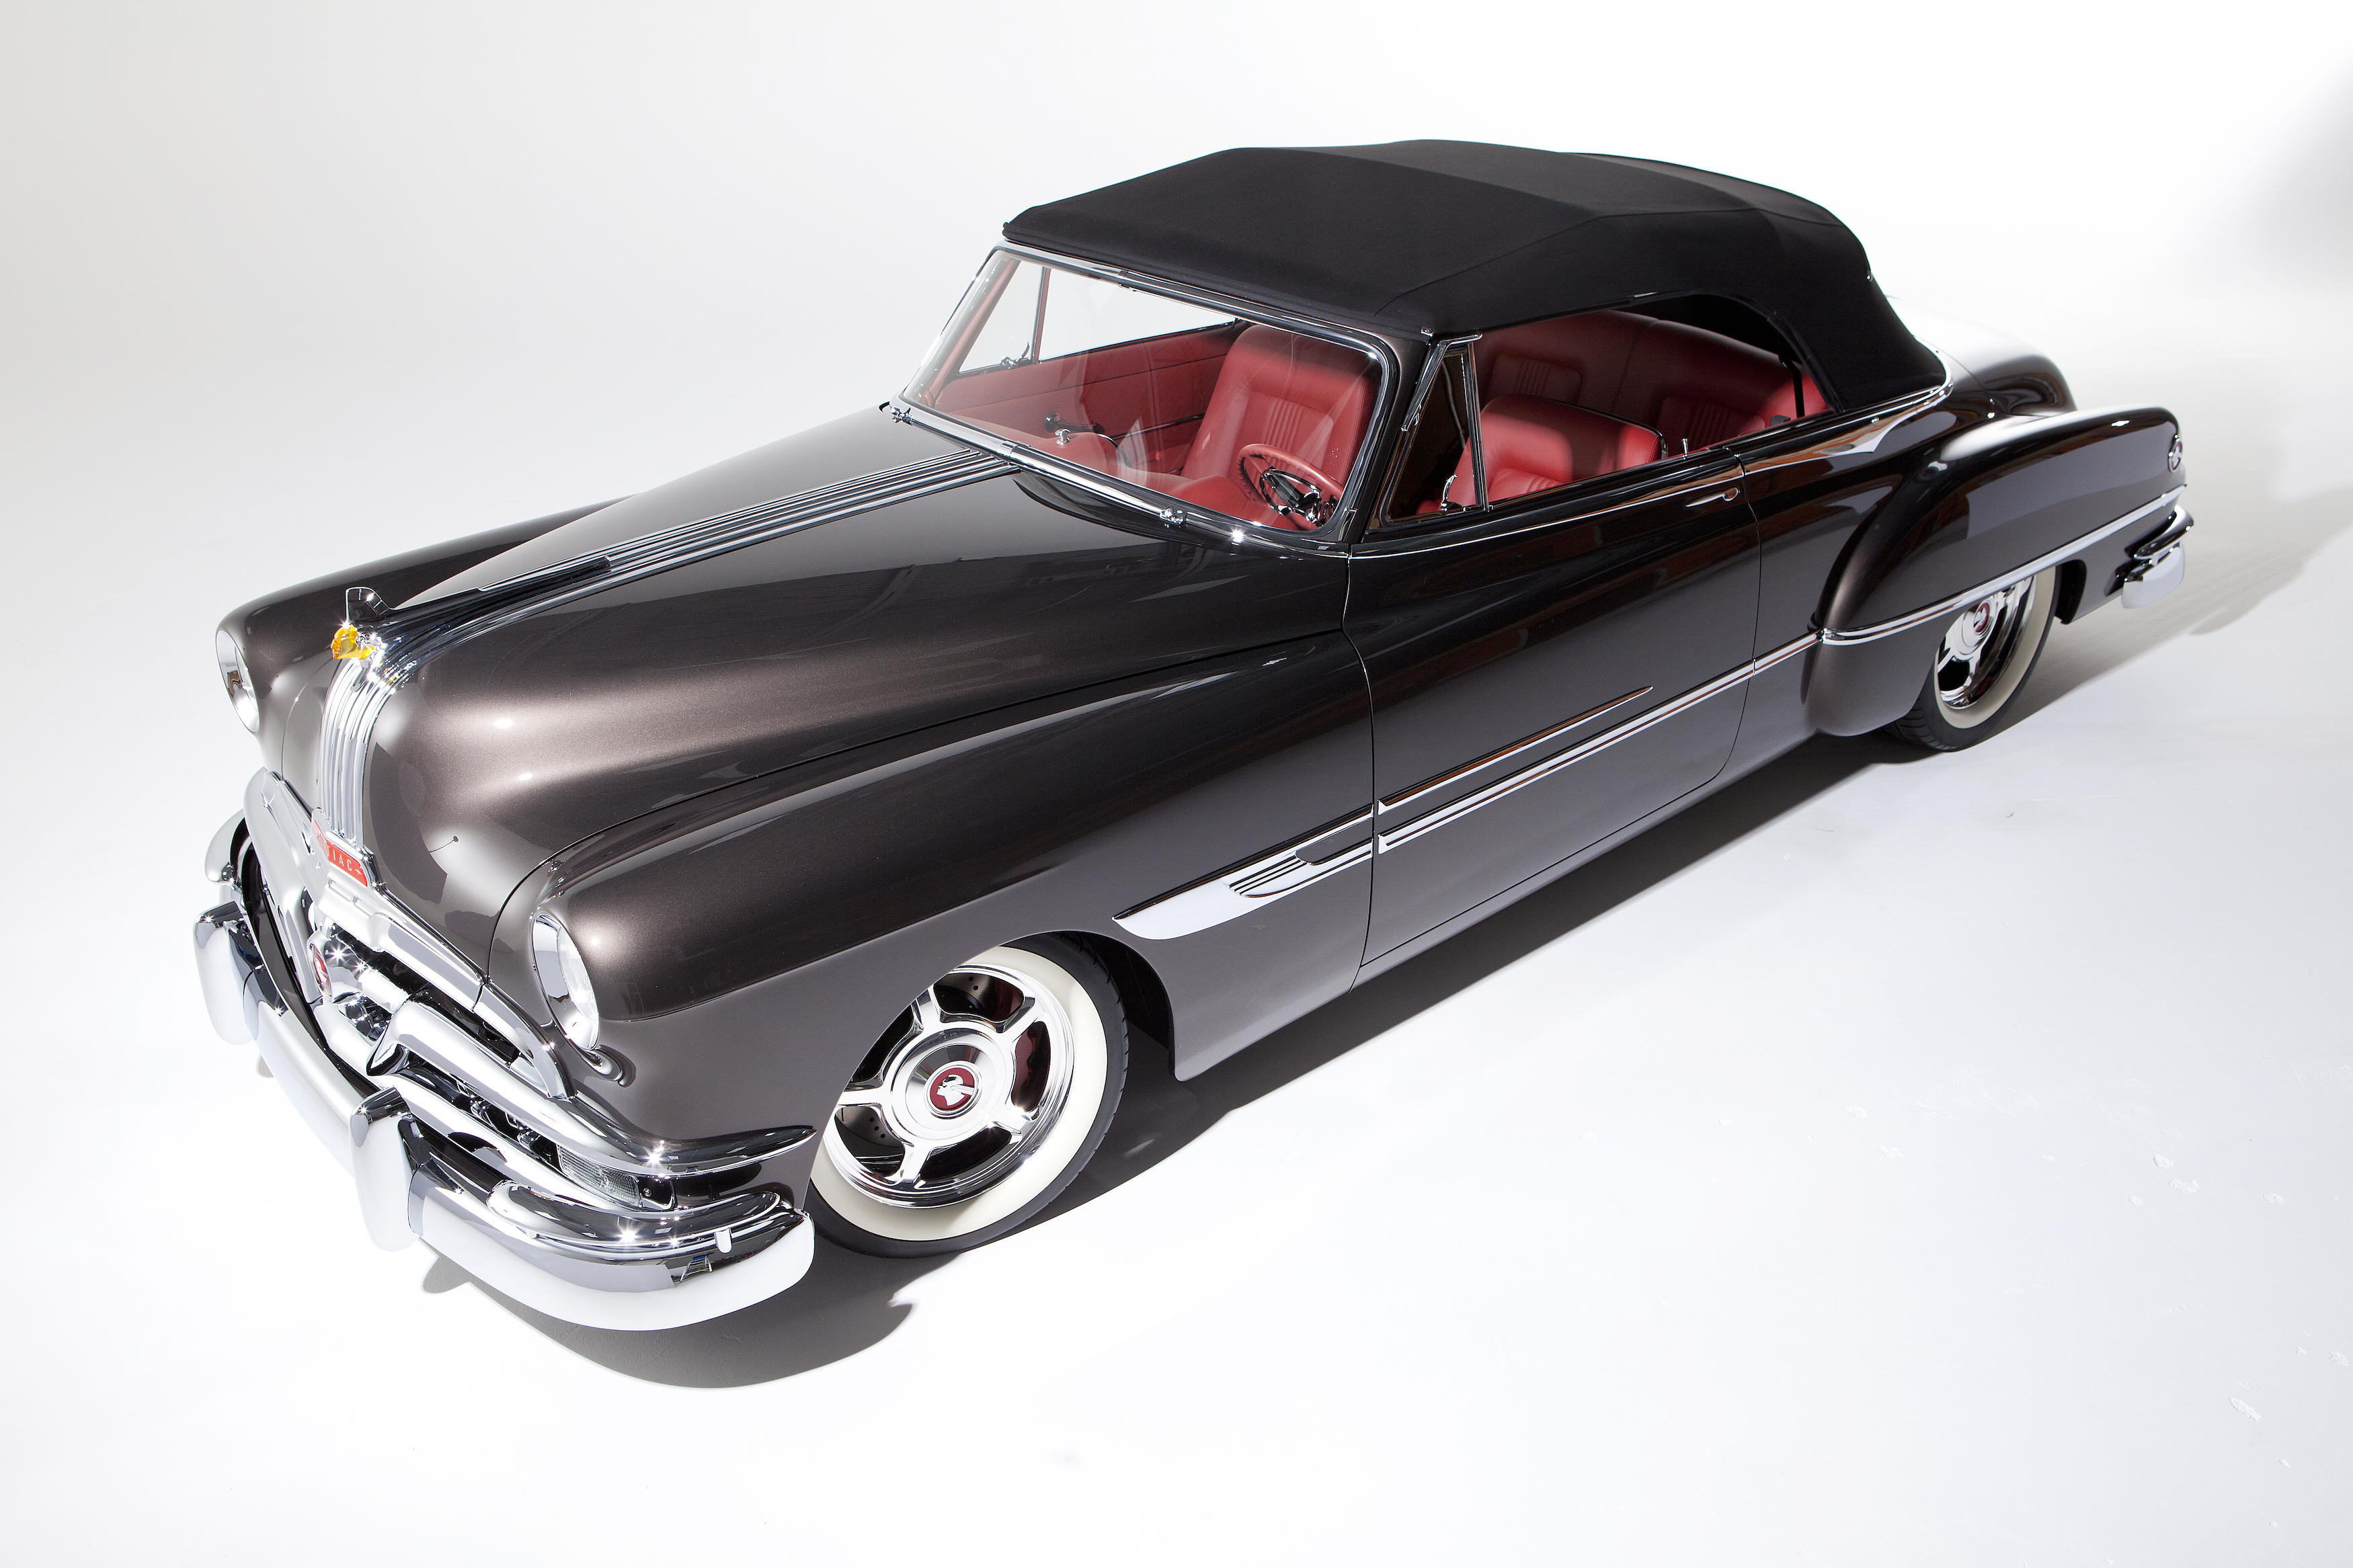 '52 Pontiac Chieftain